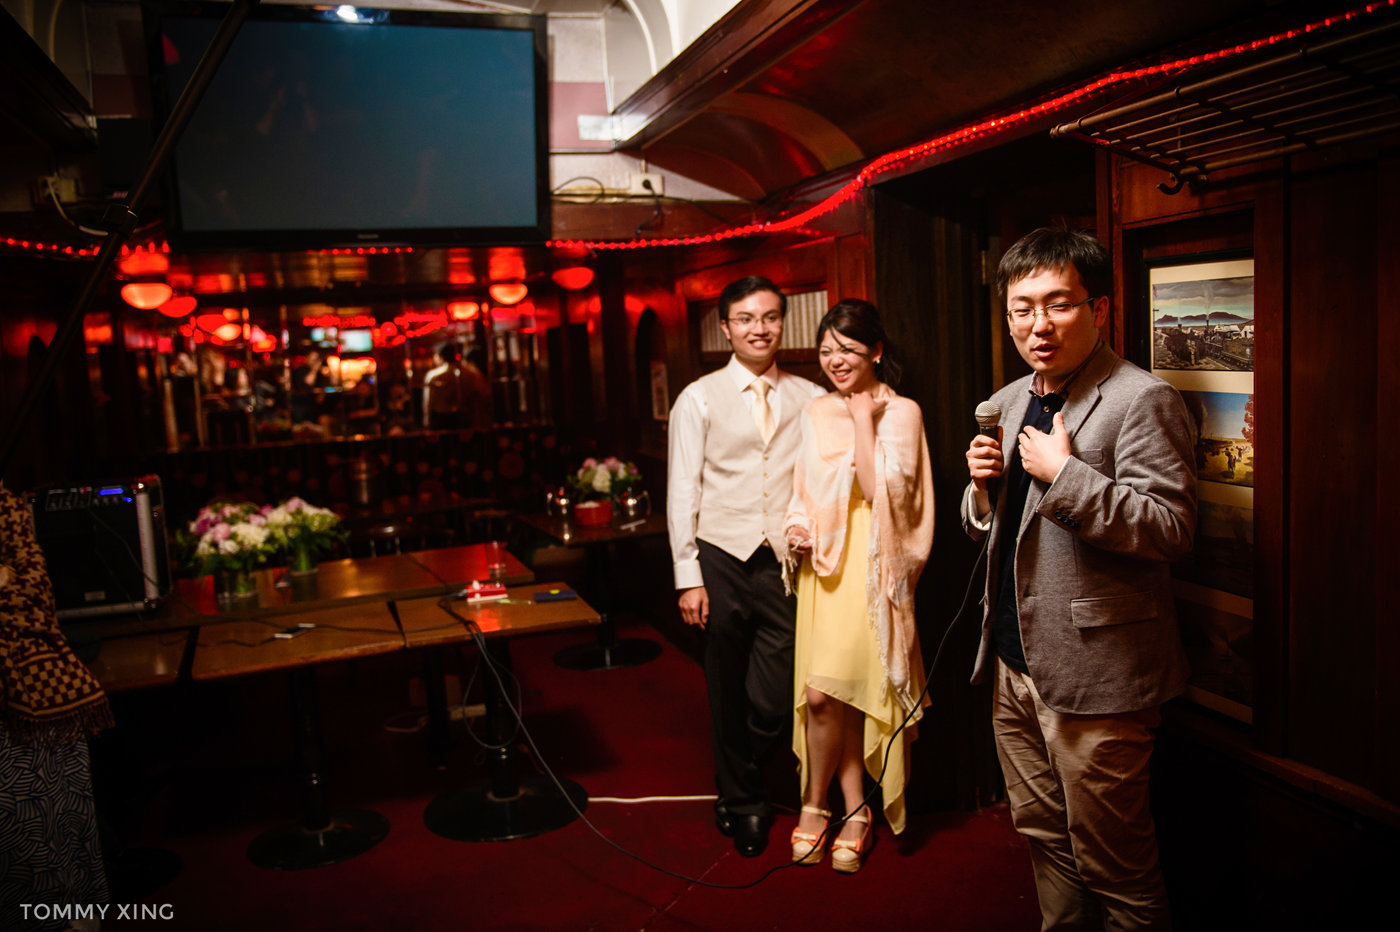 Seattle Wedding and pre wedding Los Angeles Tommy Xing Photography 西雅图洛杉矶旧金山婚礼婚纱照摄影师 232.jpg